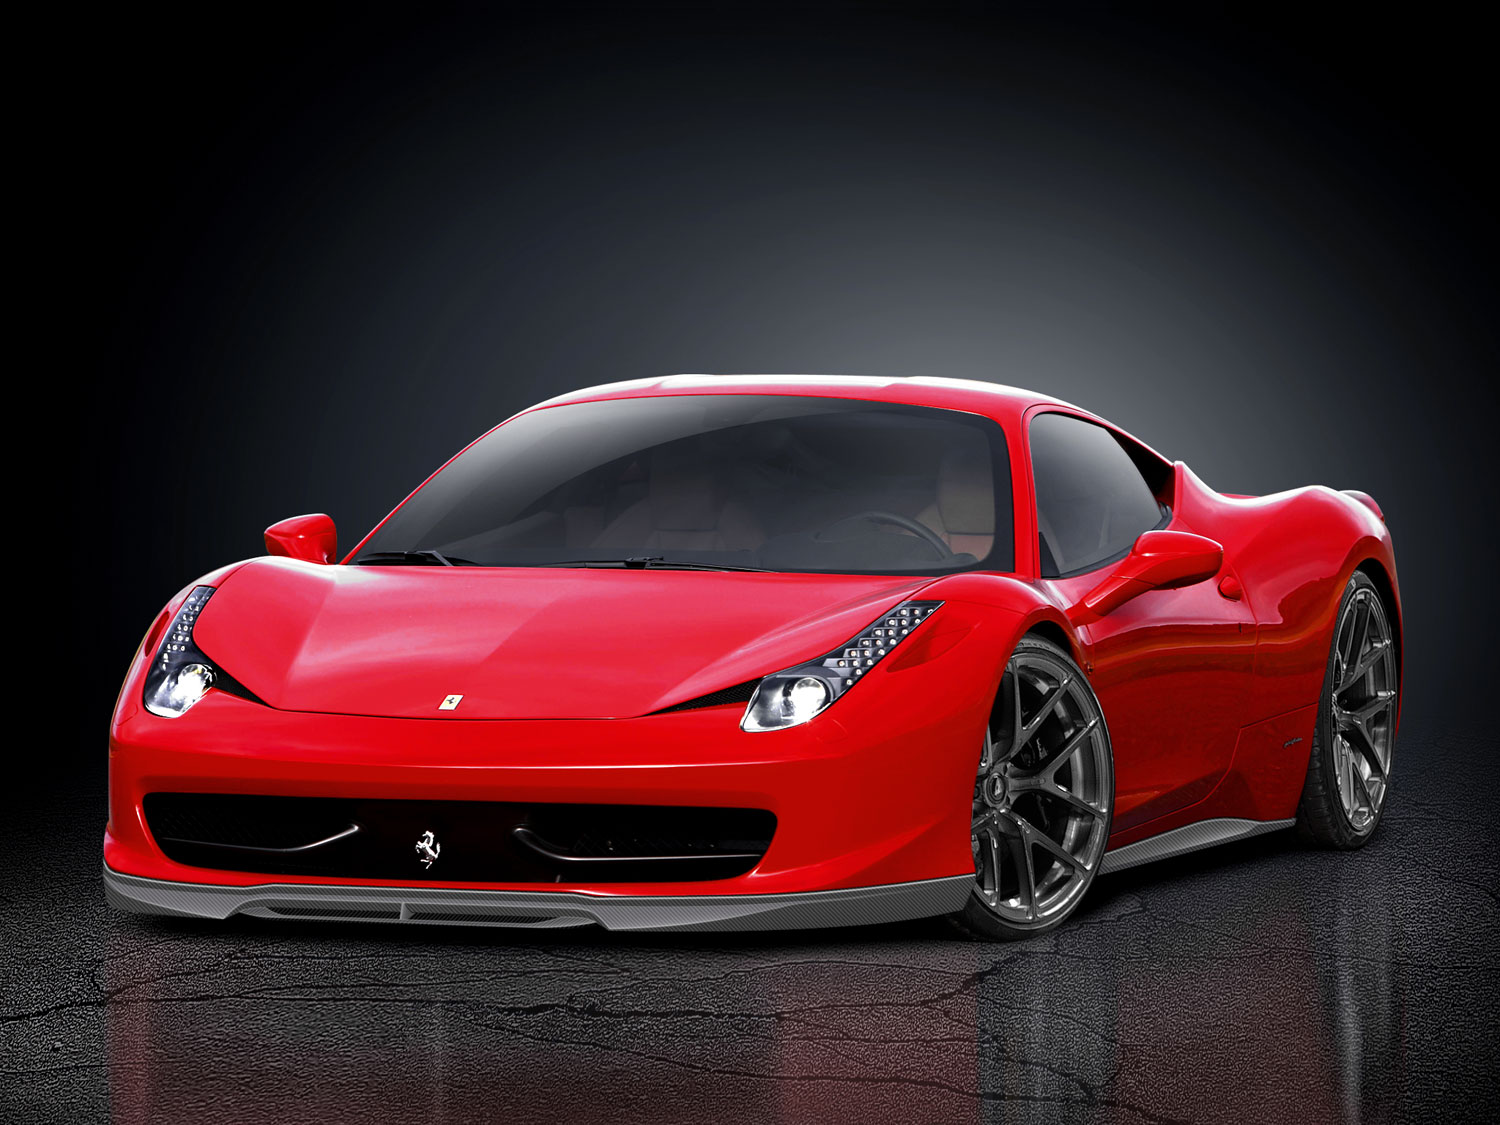 2012 vorsteiner ferrari 458 italia more aerodynamic and stylish. Black Bedroom Furniture Sets. Home Design Ideas